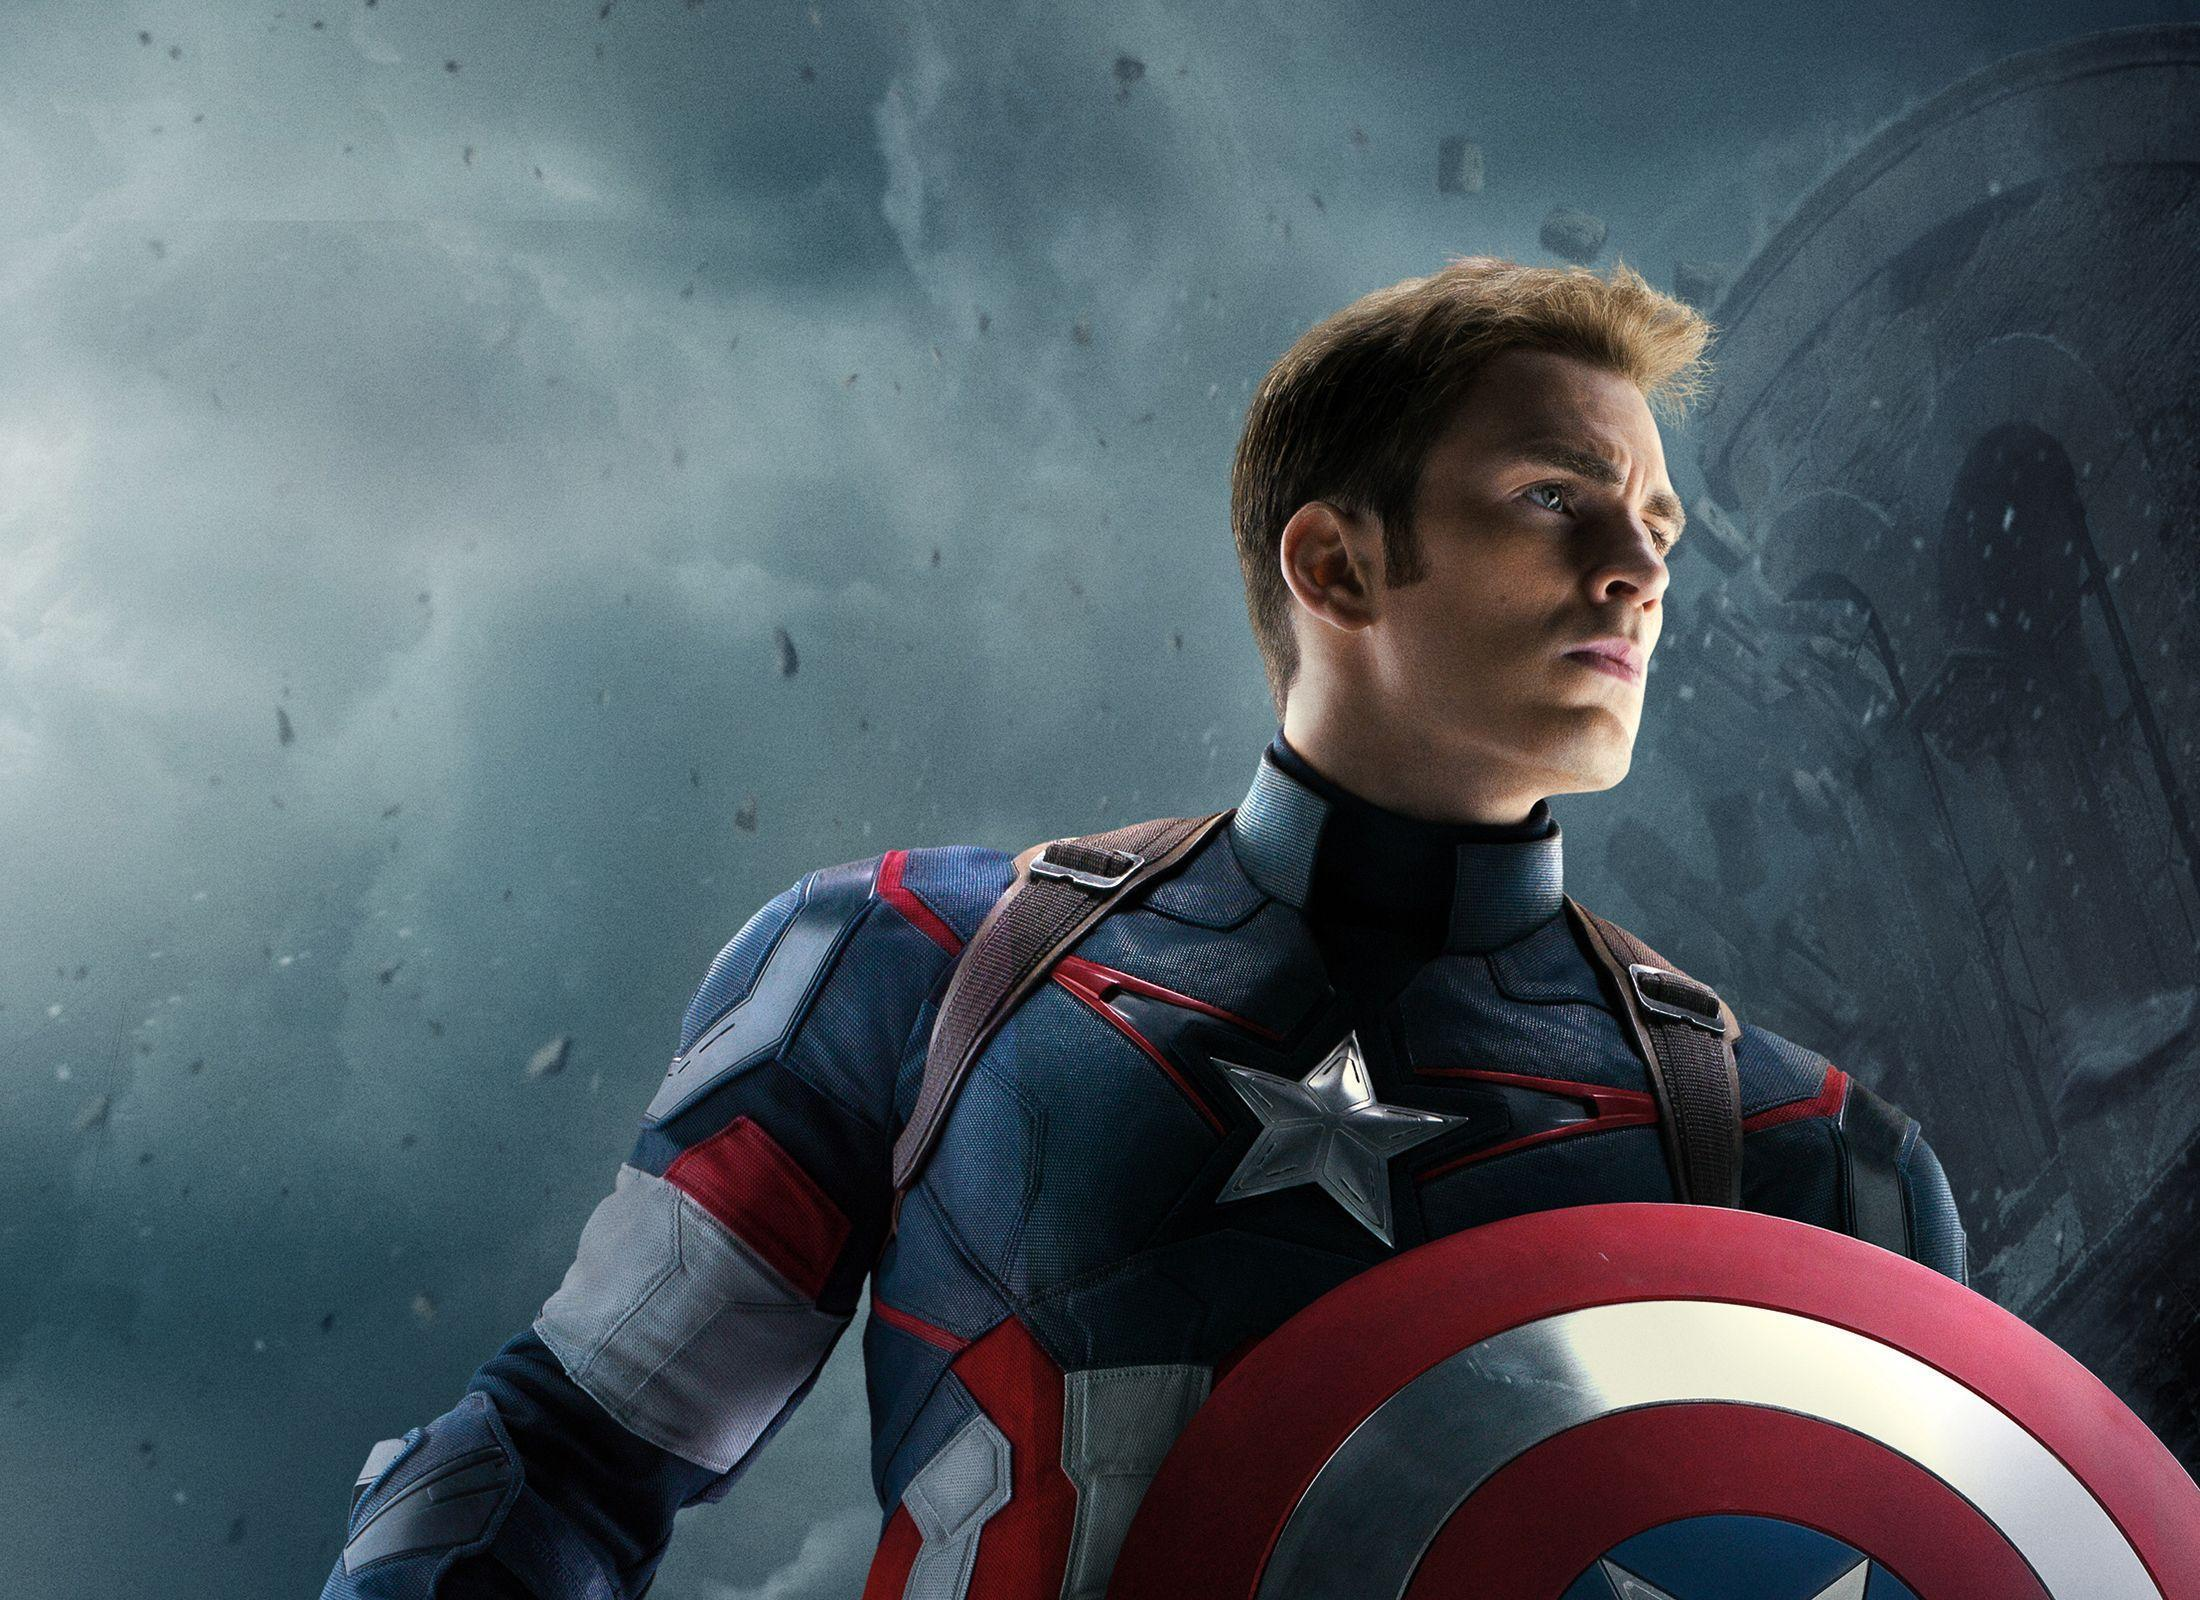 87 Chris Evans HD Wallpapers | Backgrounds - Wallpaper Abyss